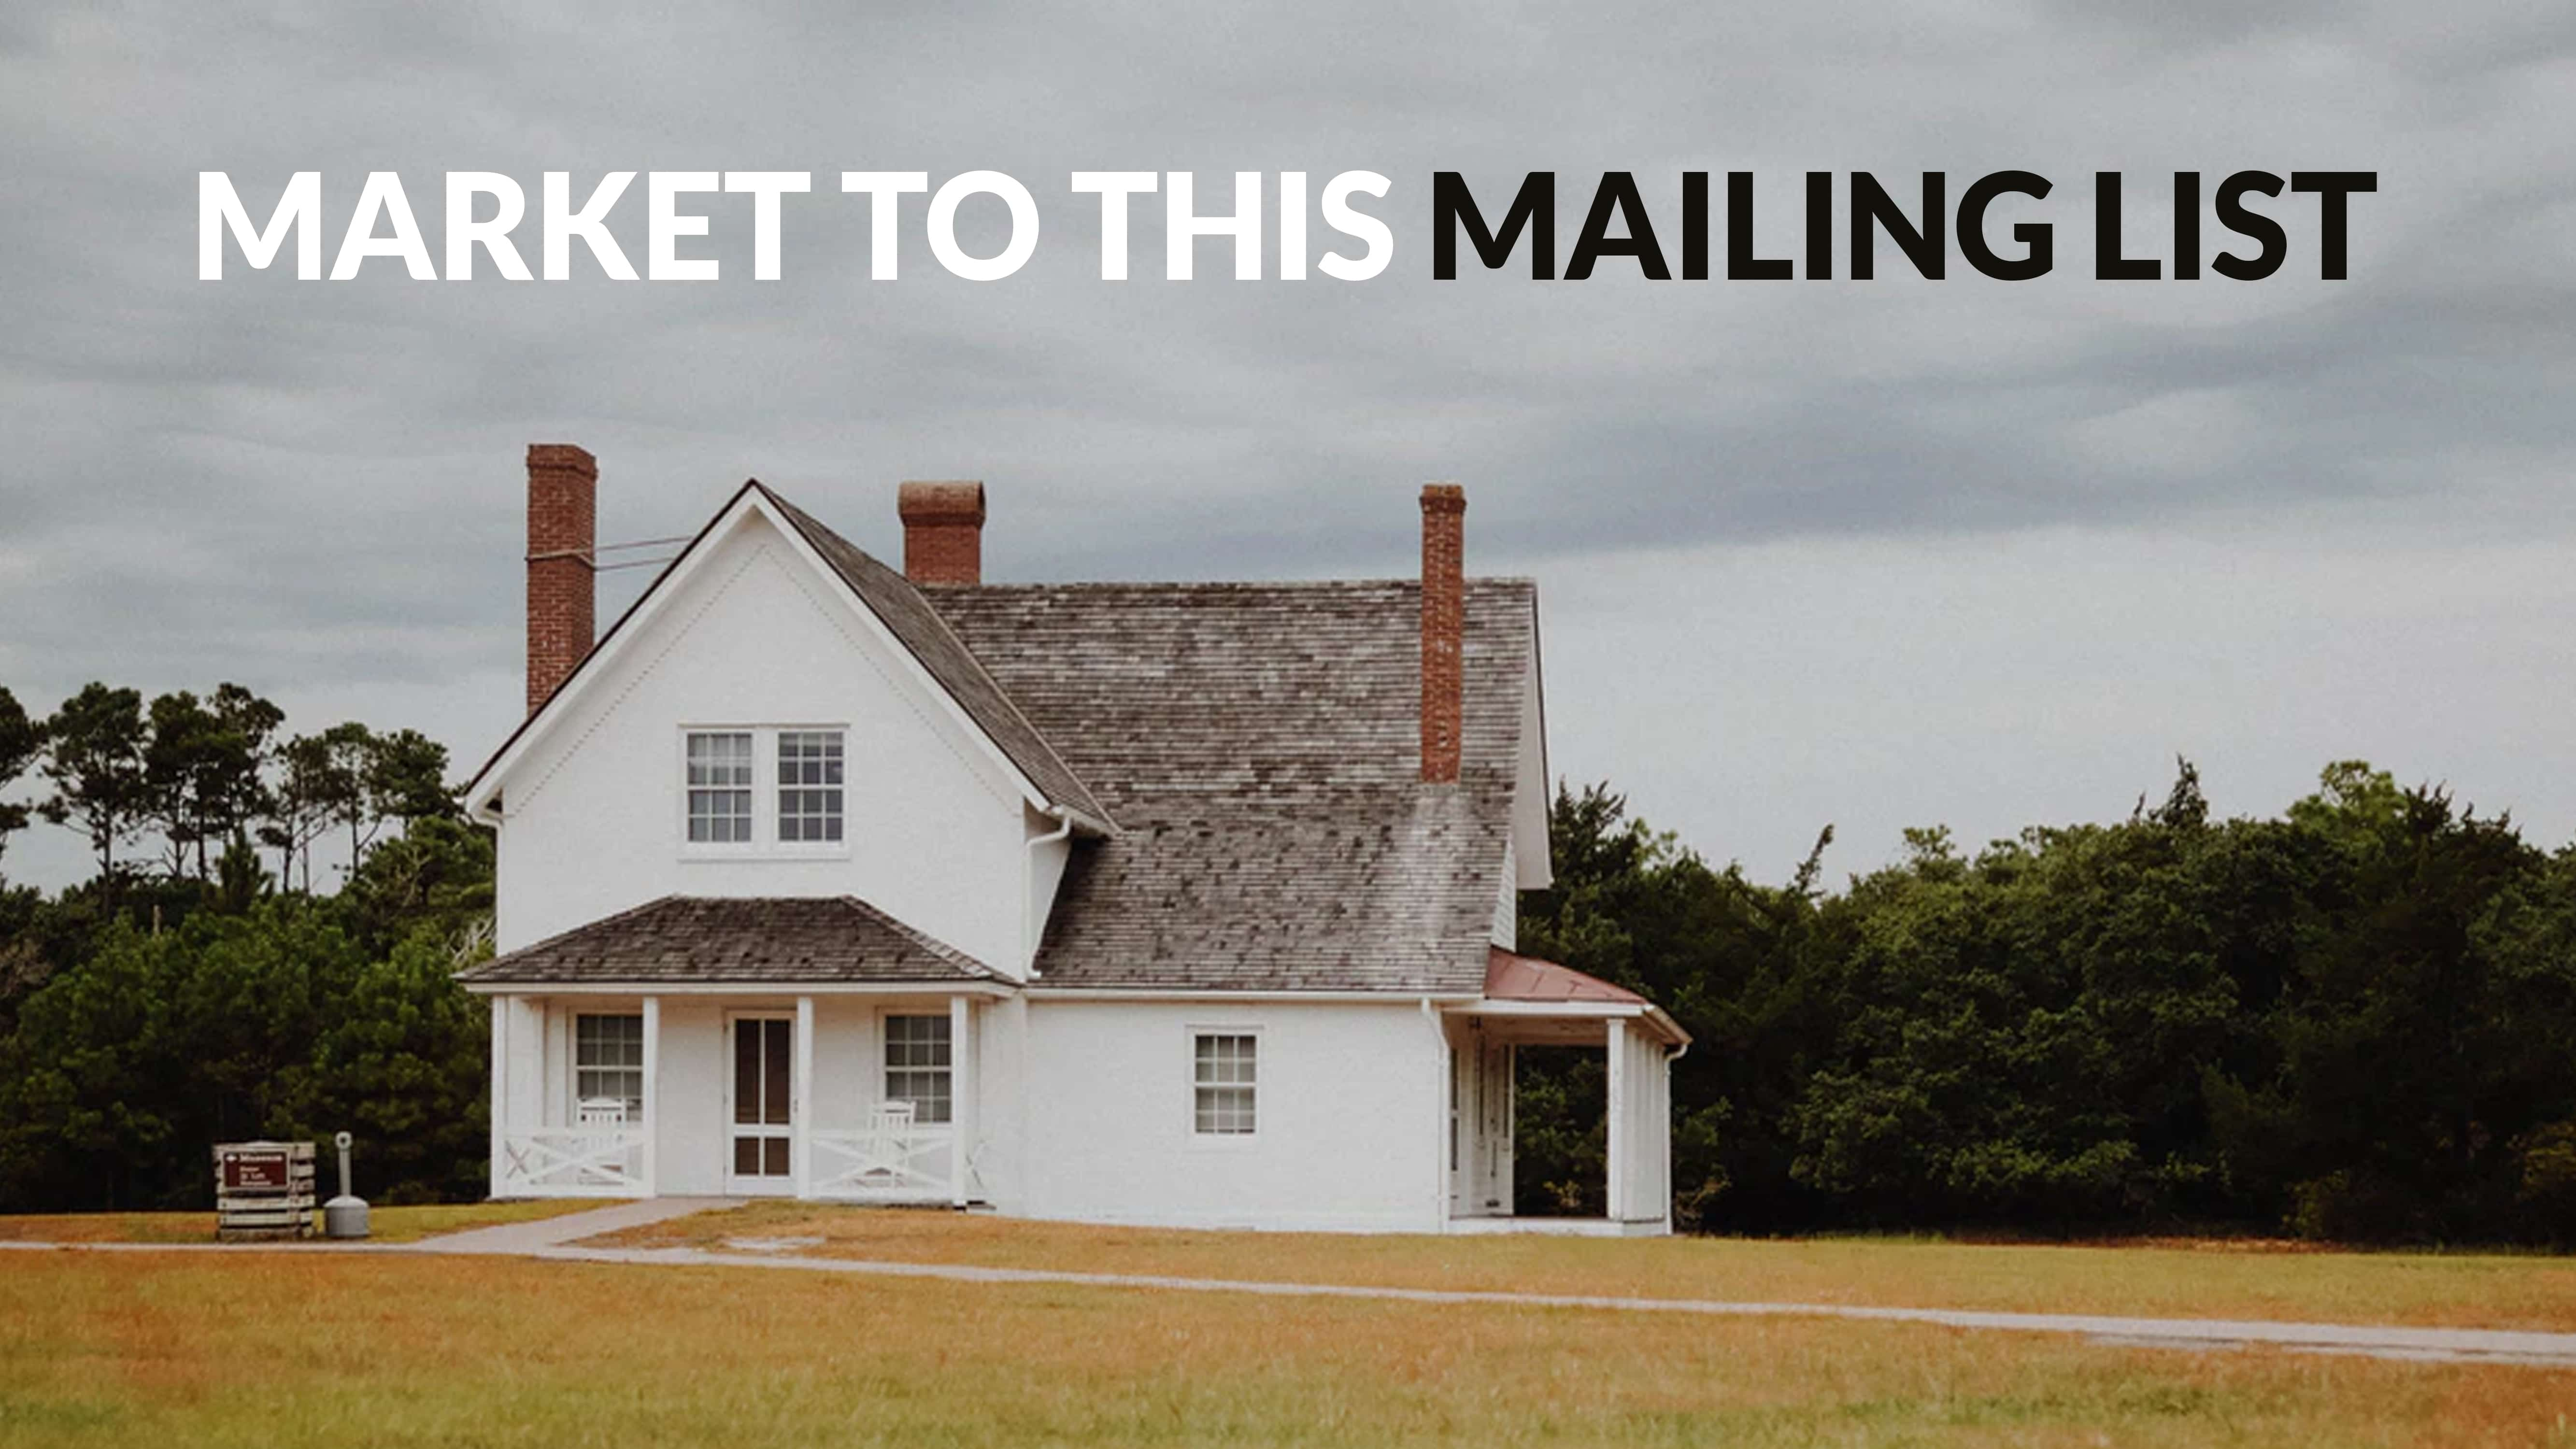 Market to this mailing list